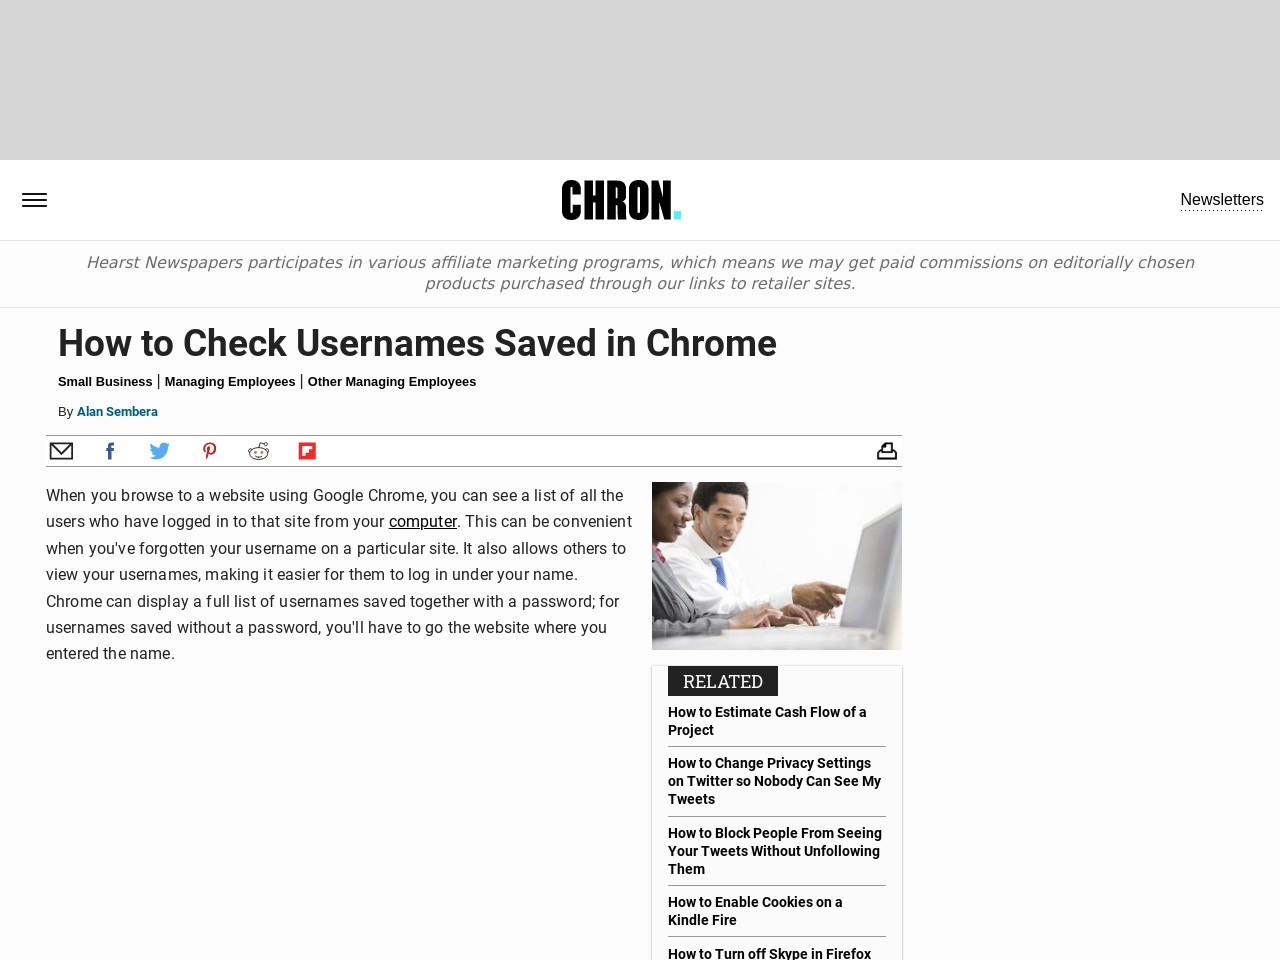 How to Check Usernames Saved in Chrome